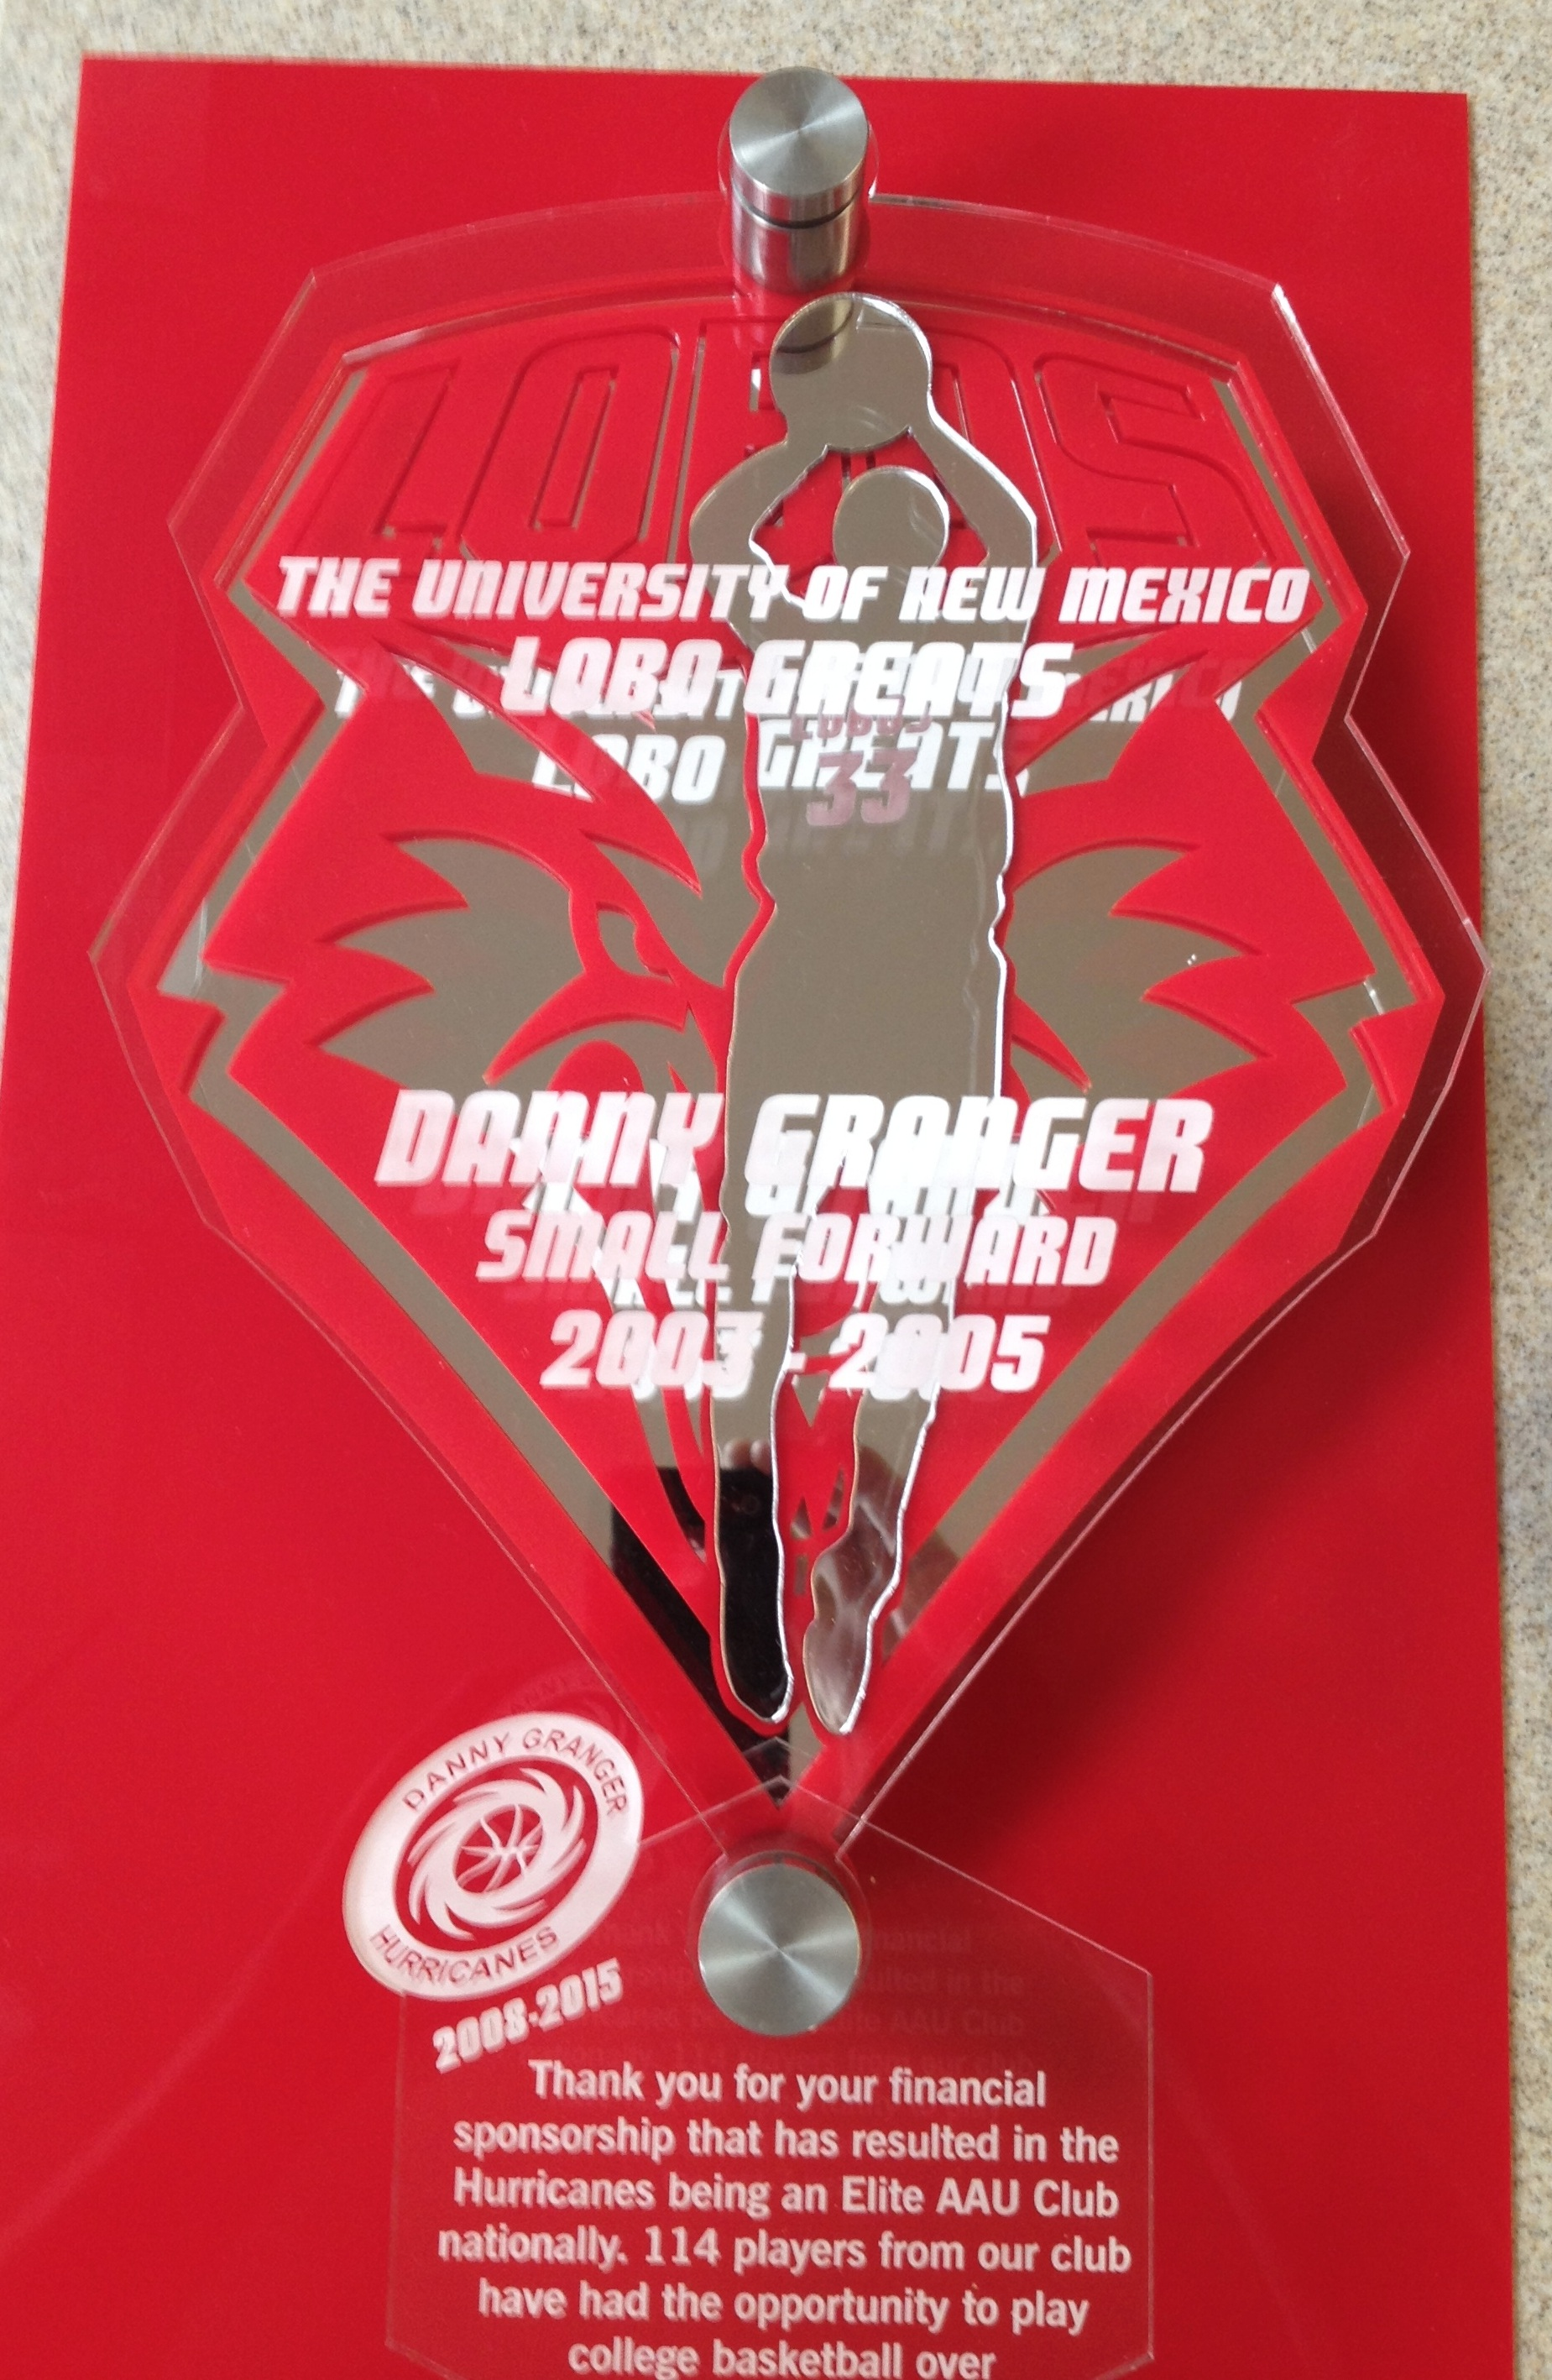 Appreciation Award - given to Danny Granger by the Albuquerque Hurricanes in appreciation for his sponsorship of the AAU Basketball Team  Contact us for pricing information.